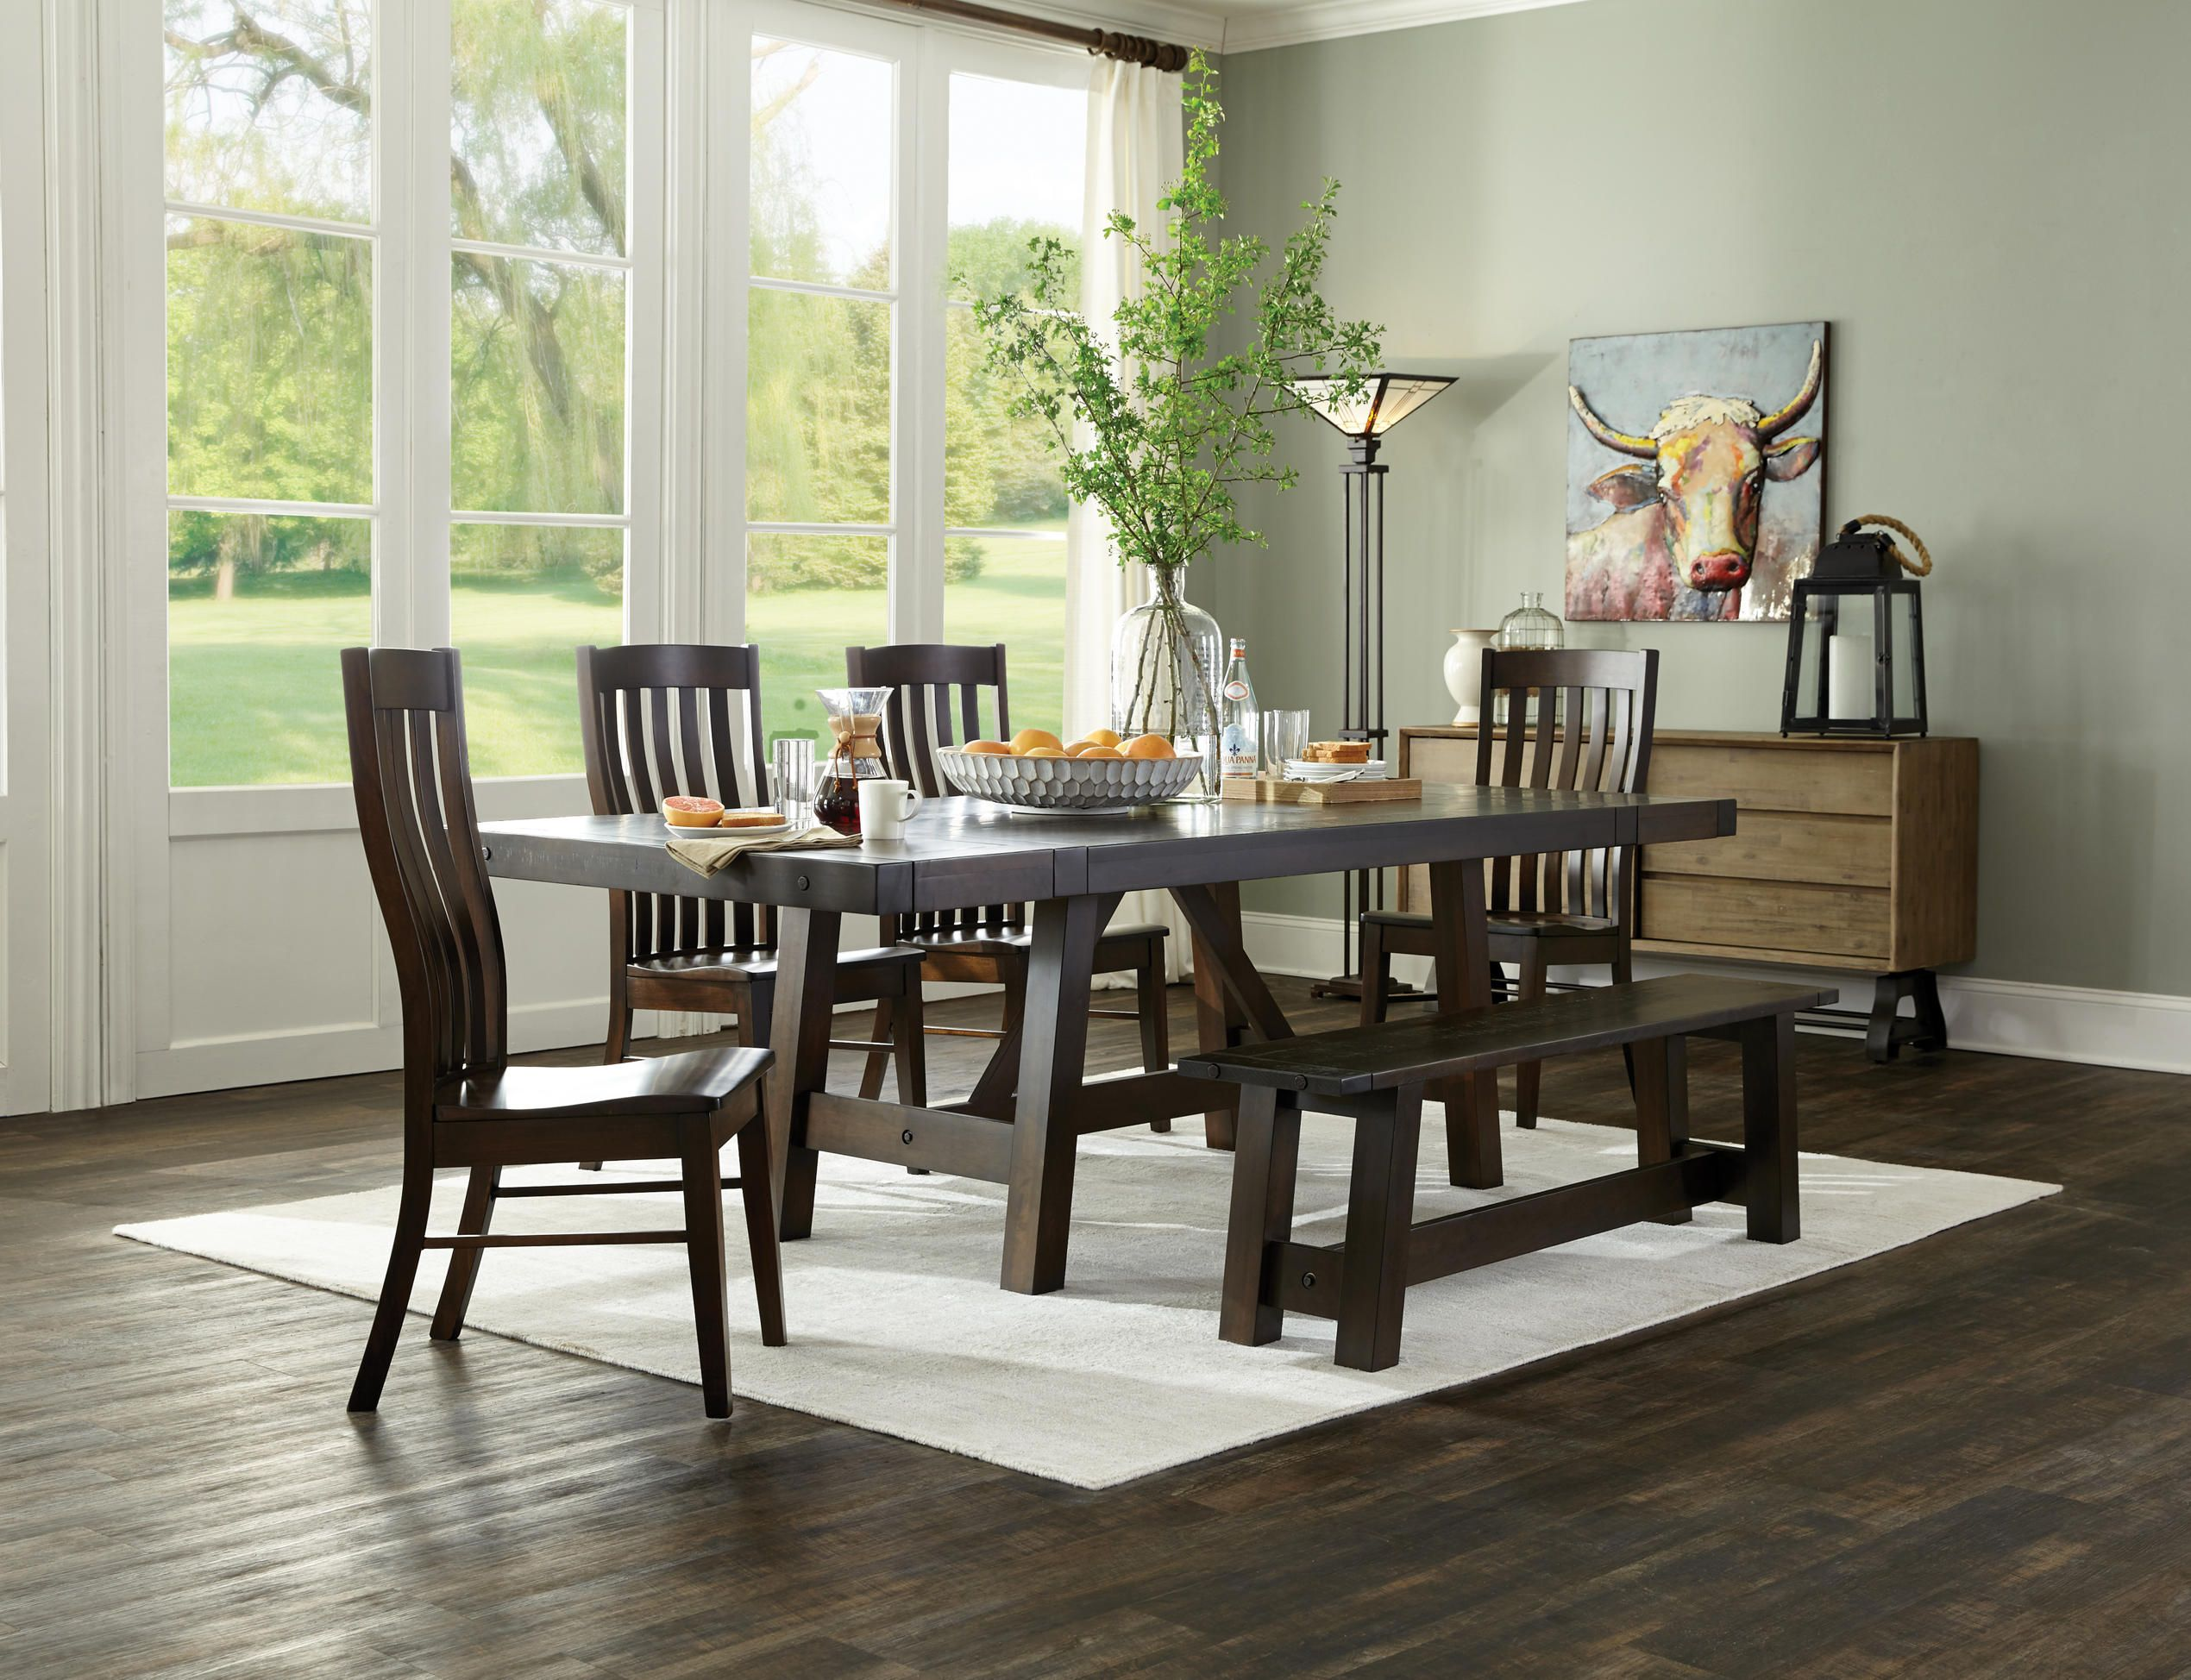 The Houghton Dining Group Is Made Of Solid Maple And Beautifully